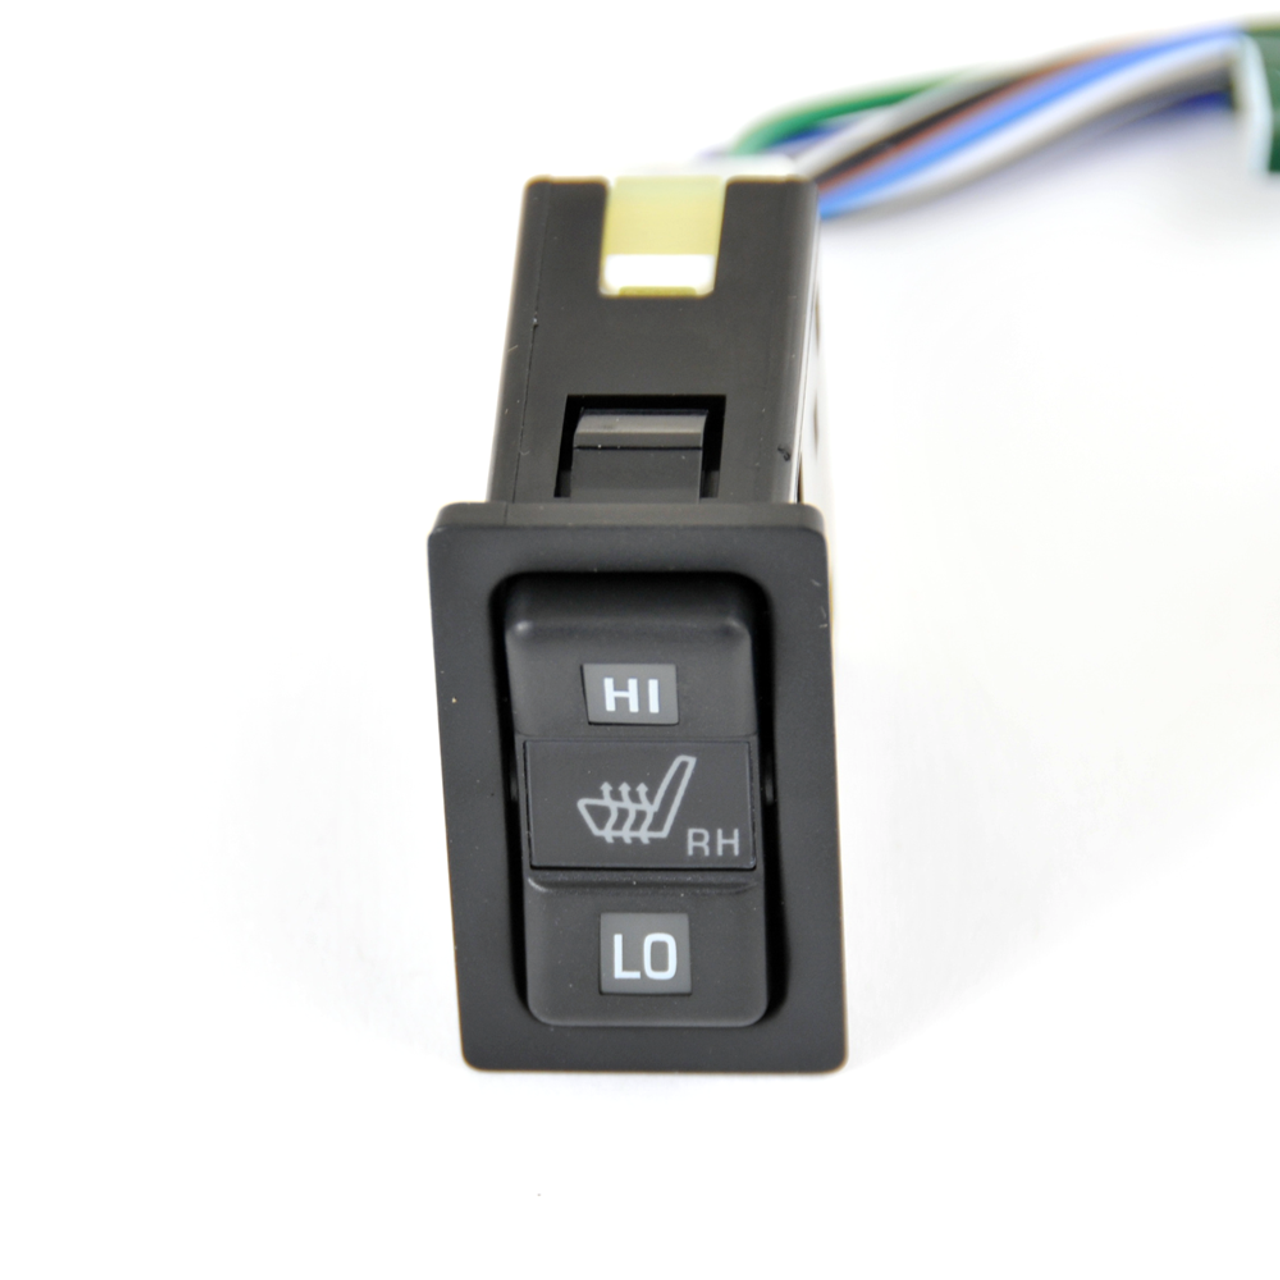 JDM Toyota Vertical Seat Heater Switch- Black RH (SHS-1RH)